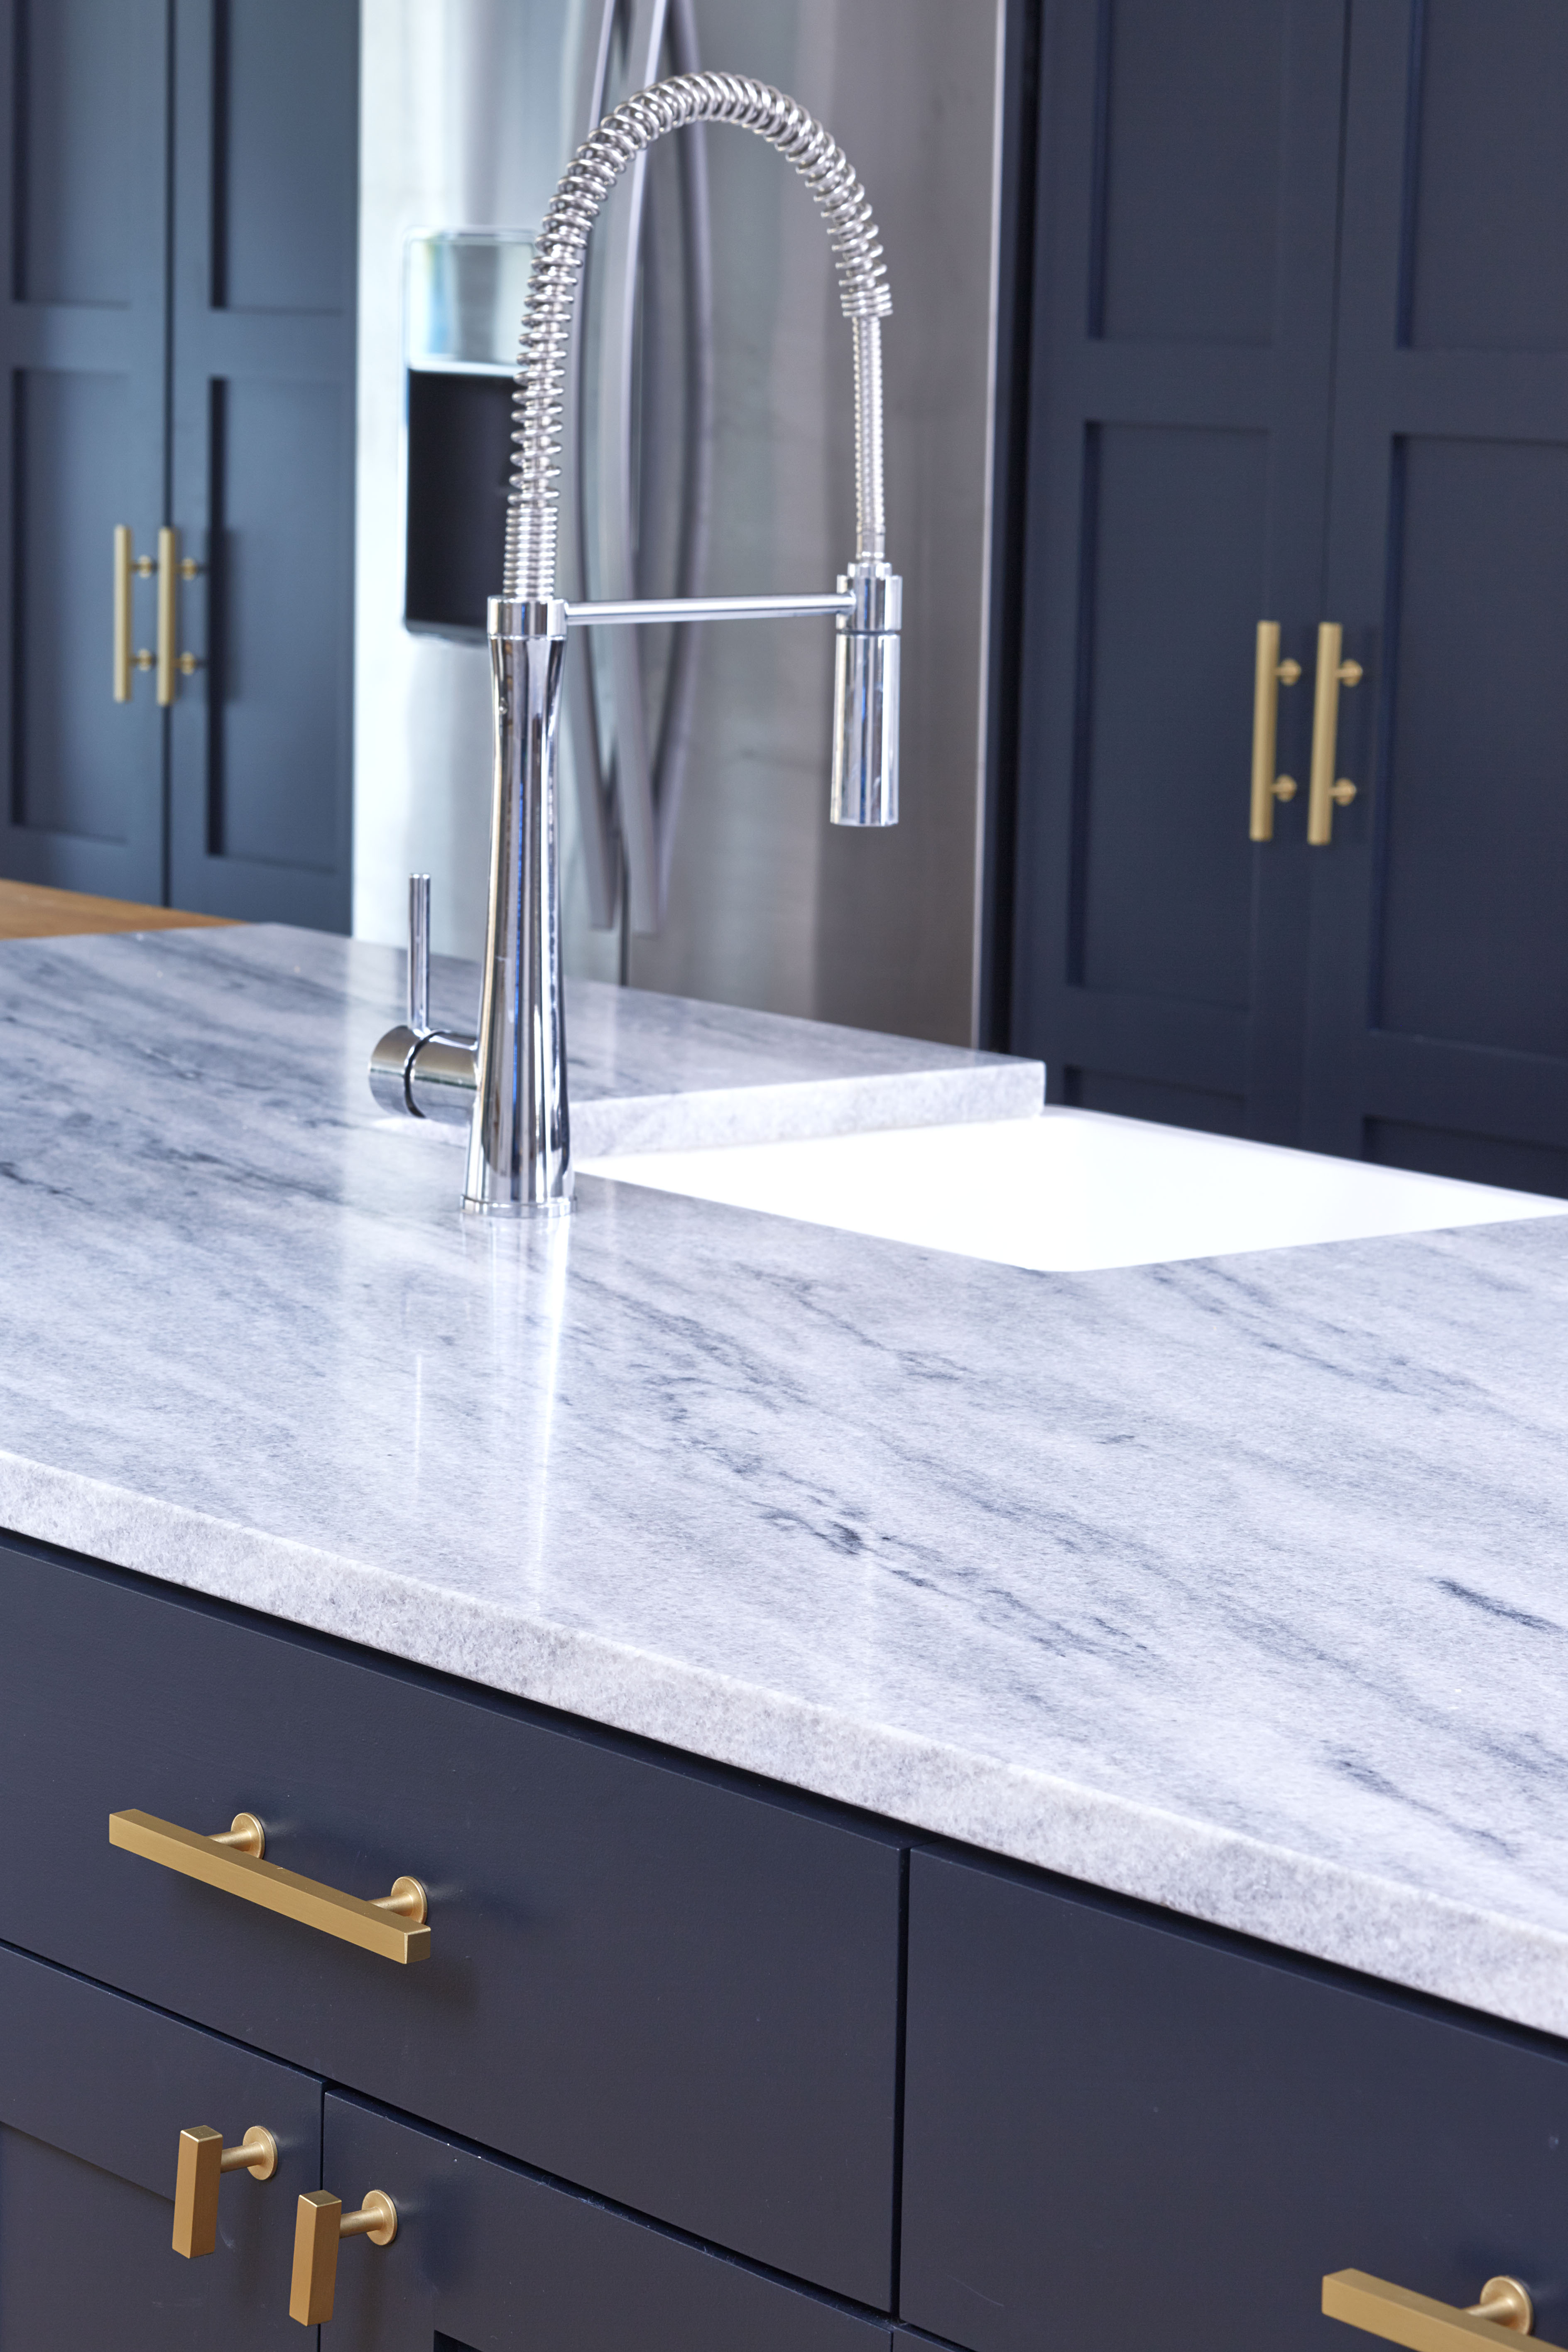 White-cherokee-american-marble-kellen-minor-kitchen-5.jpg